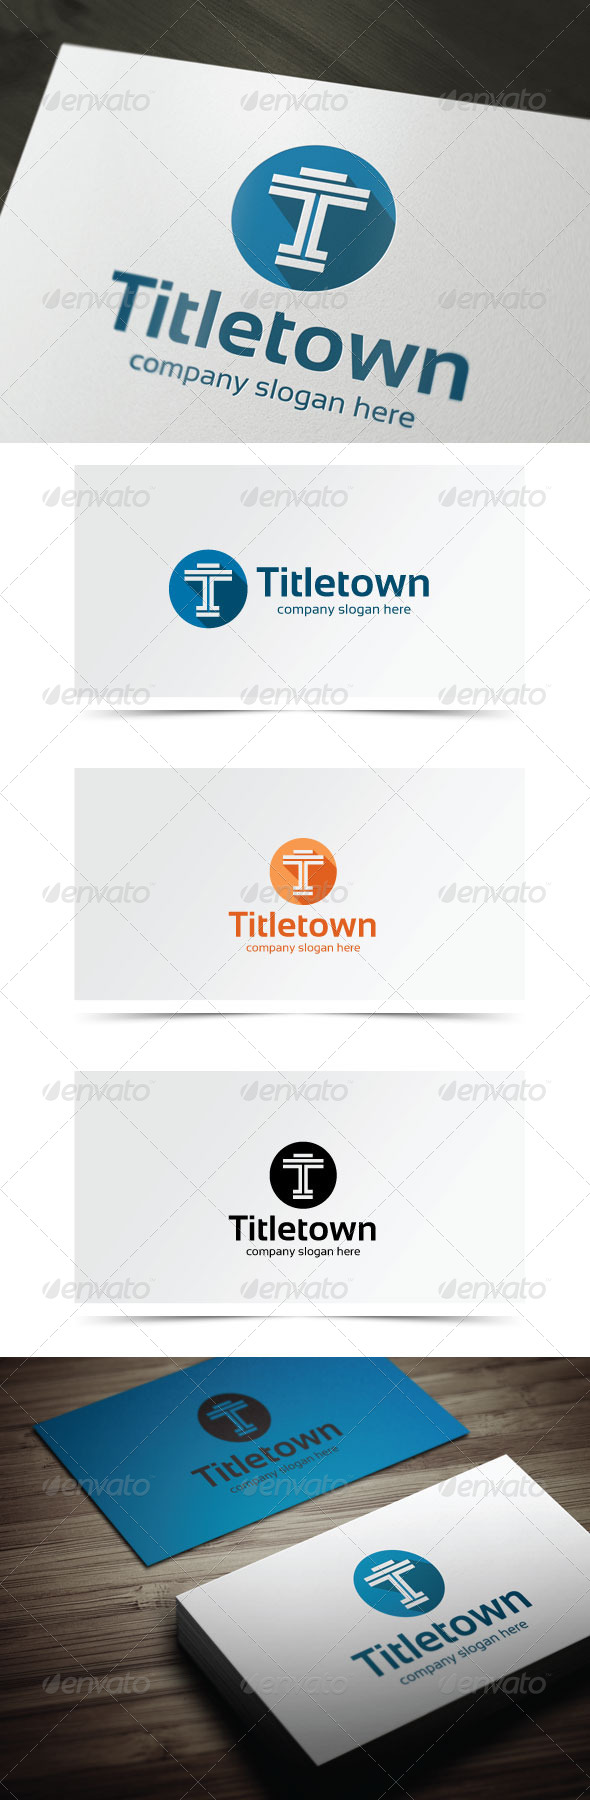 GraphicRiver Titletown 6202302